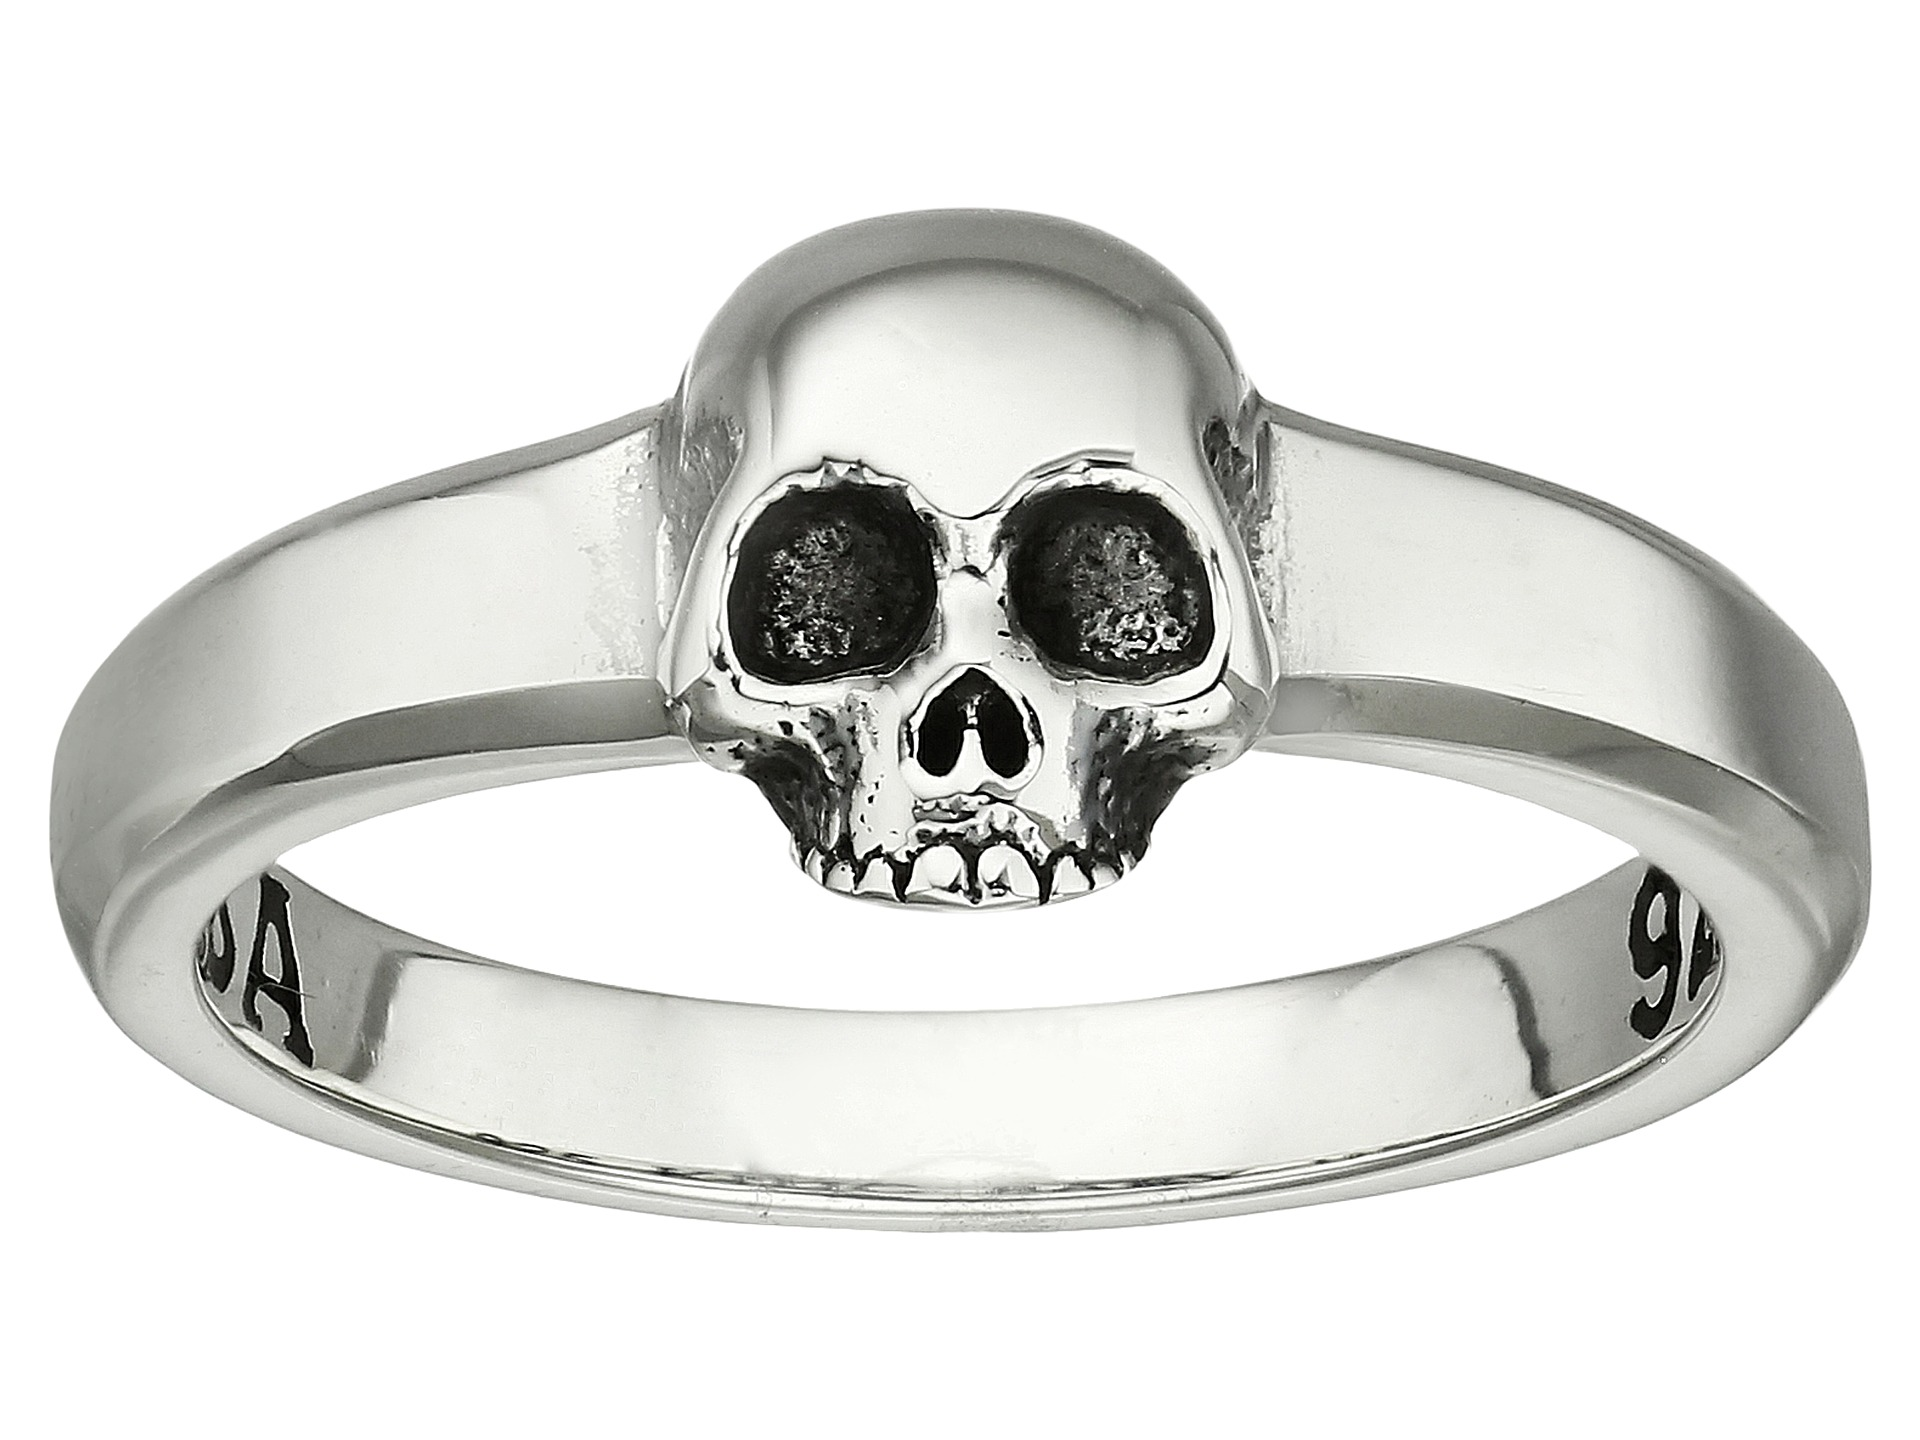 King baby studio hamlet skull ring at for King baby jewelry sale